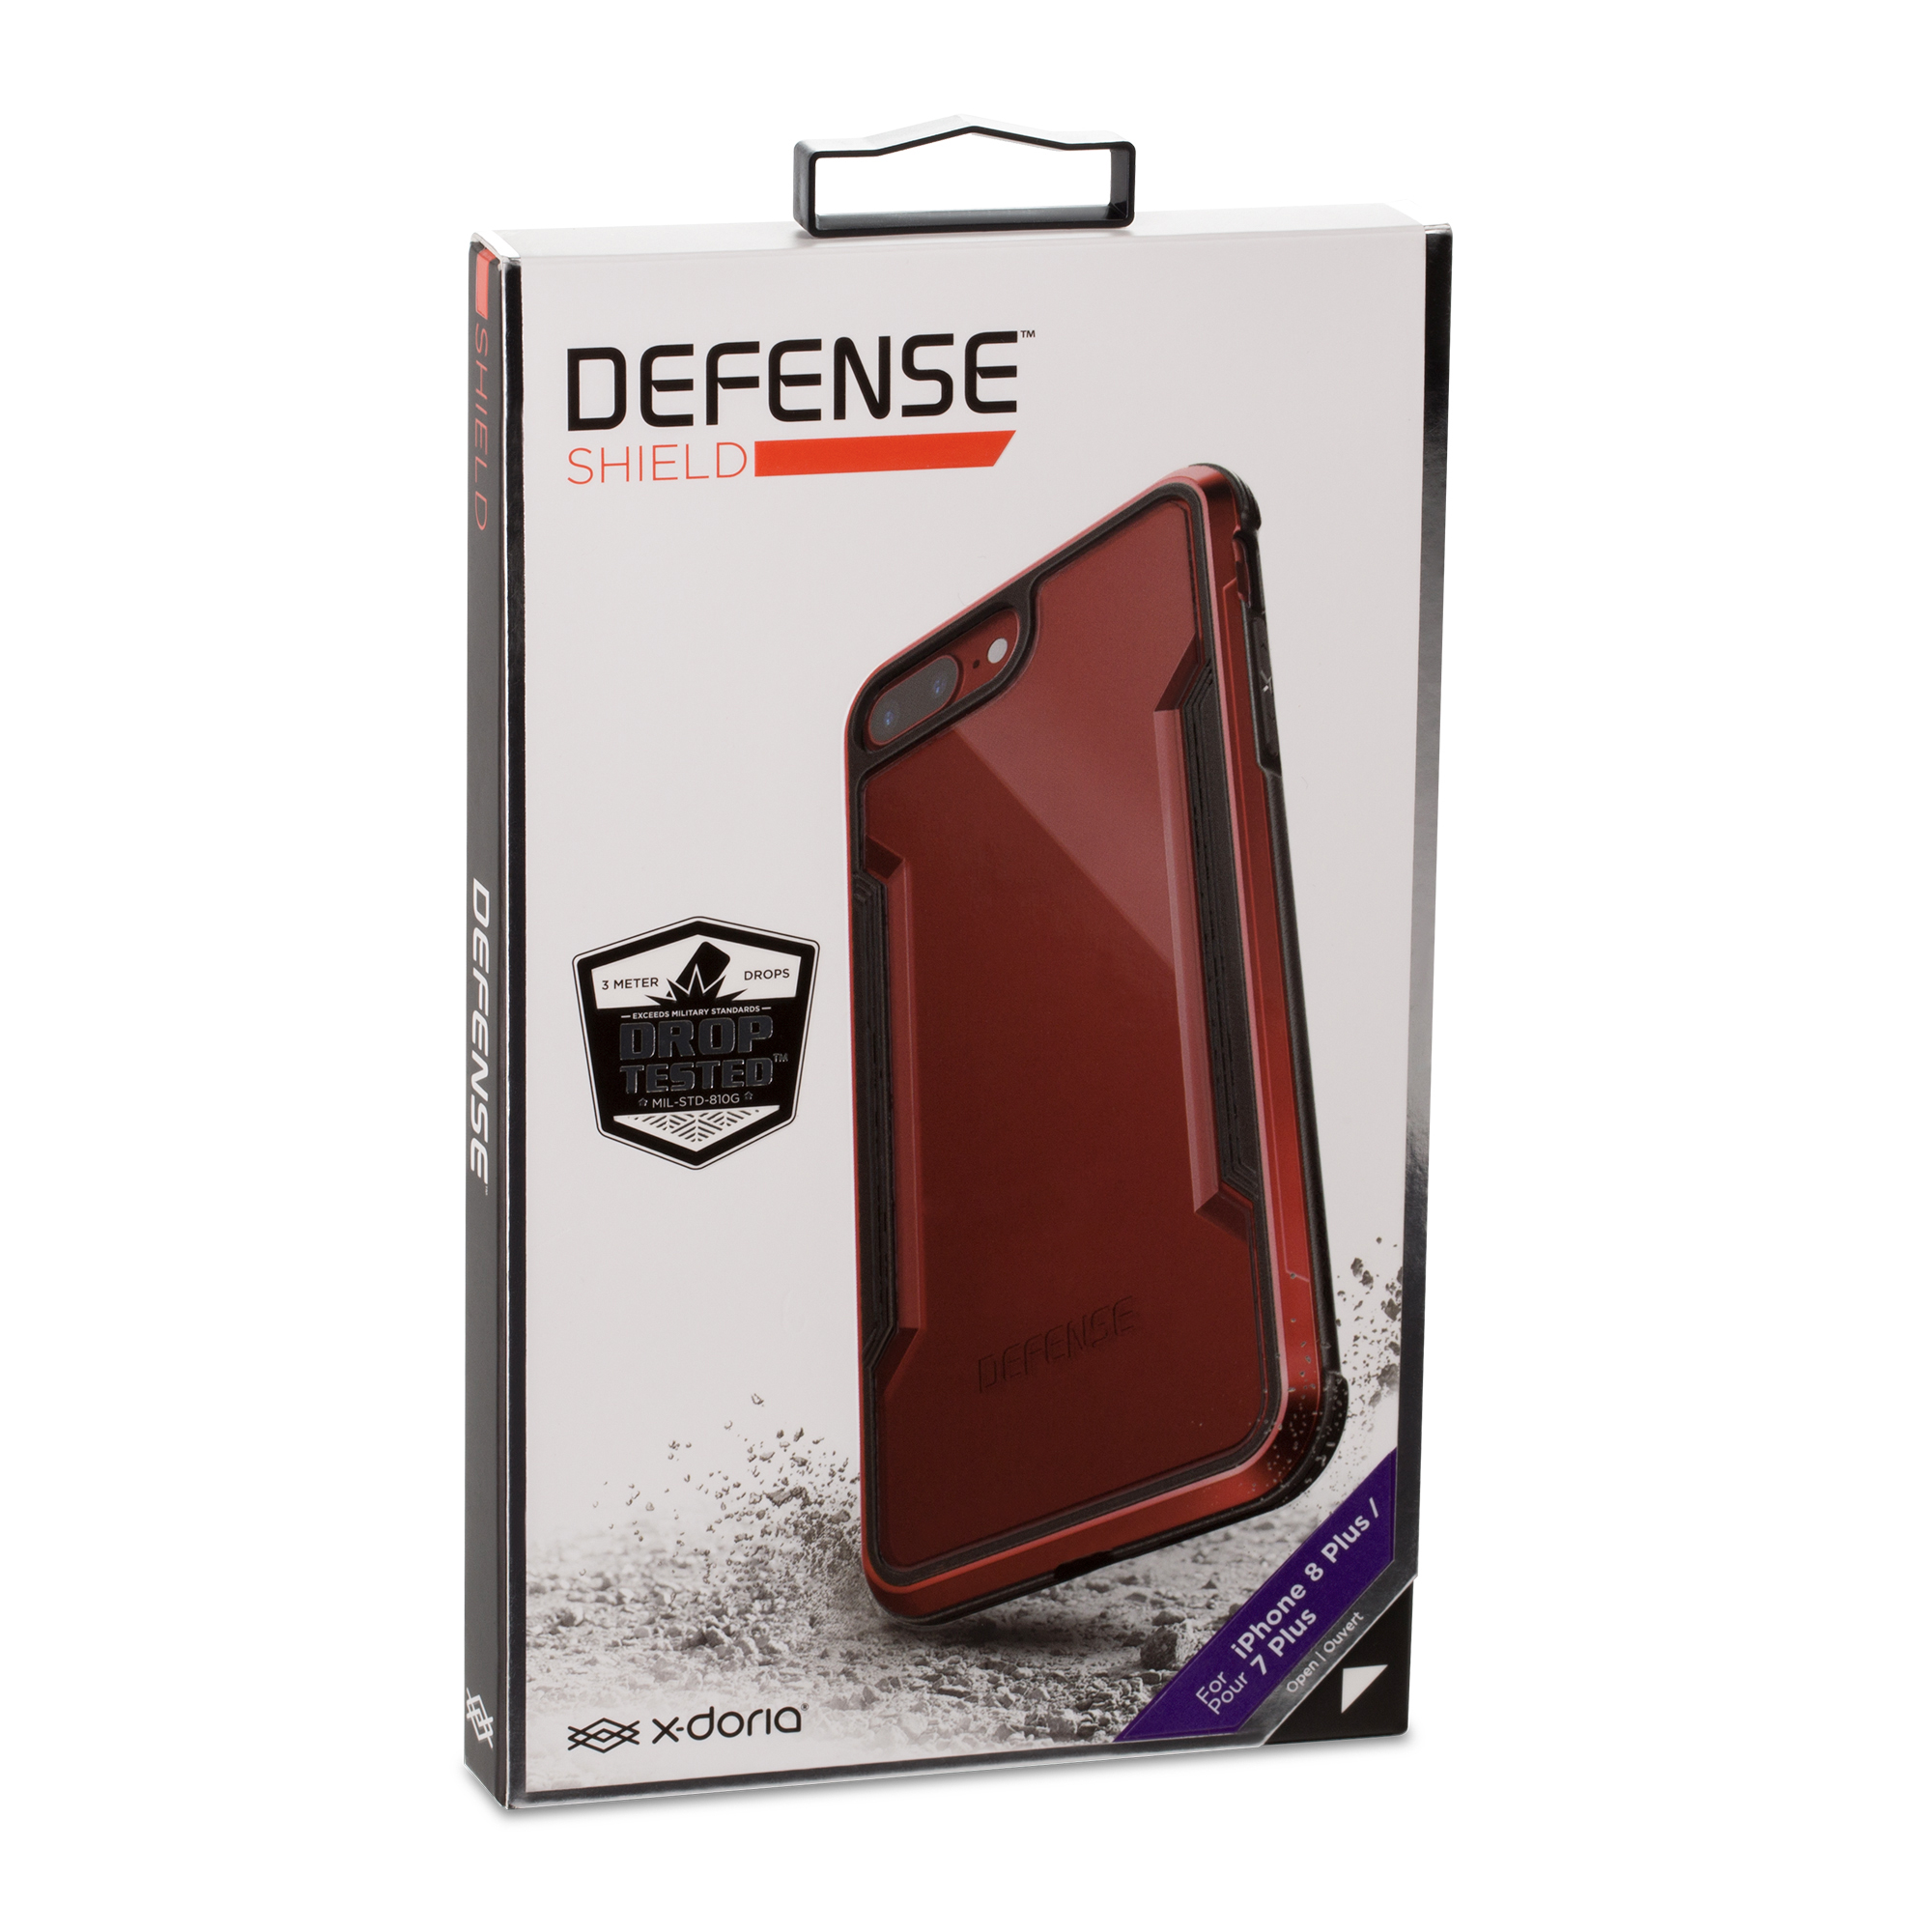 reputable site 09d4a 2e7d2 x-doria Defense Shield for iPhone 8 Plus - SmarTone Online Store